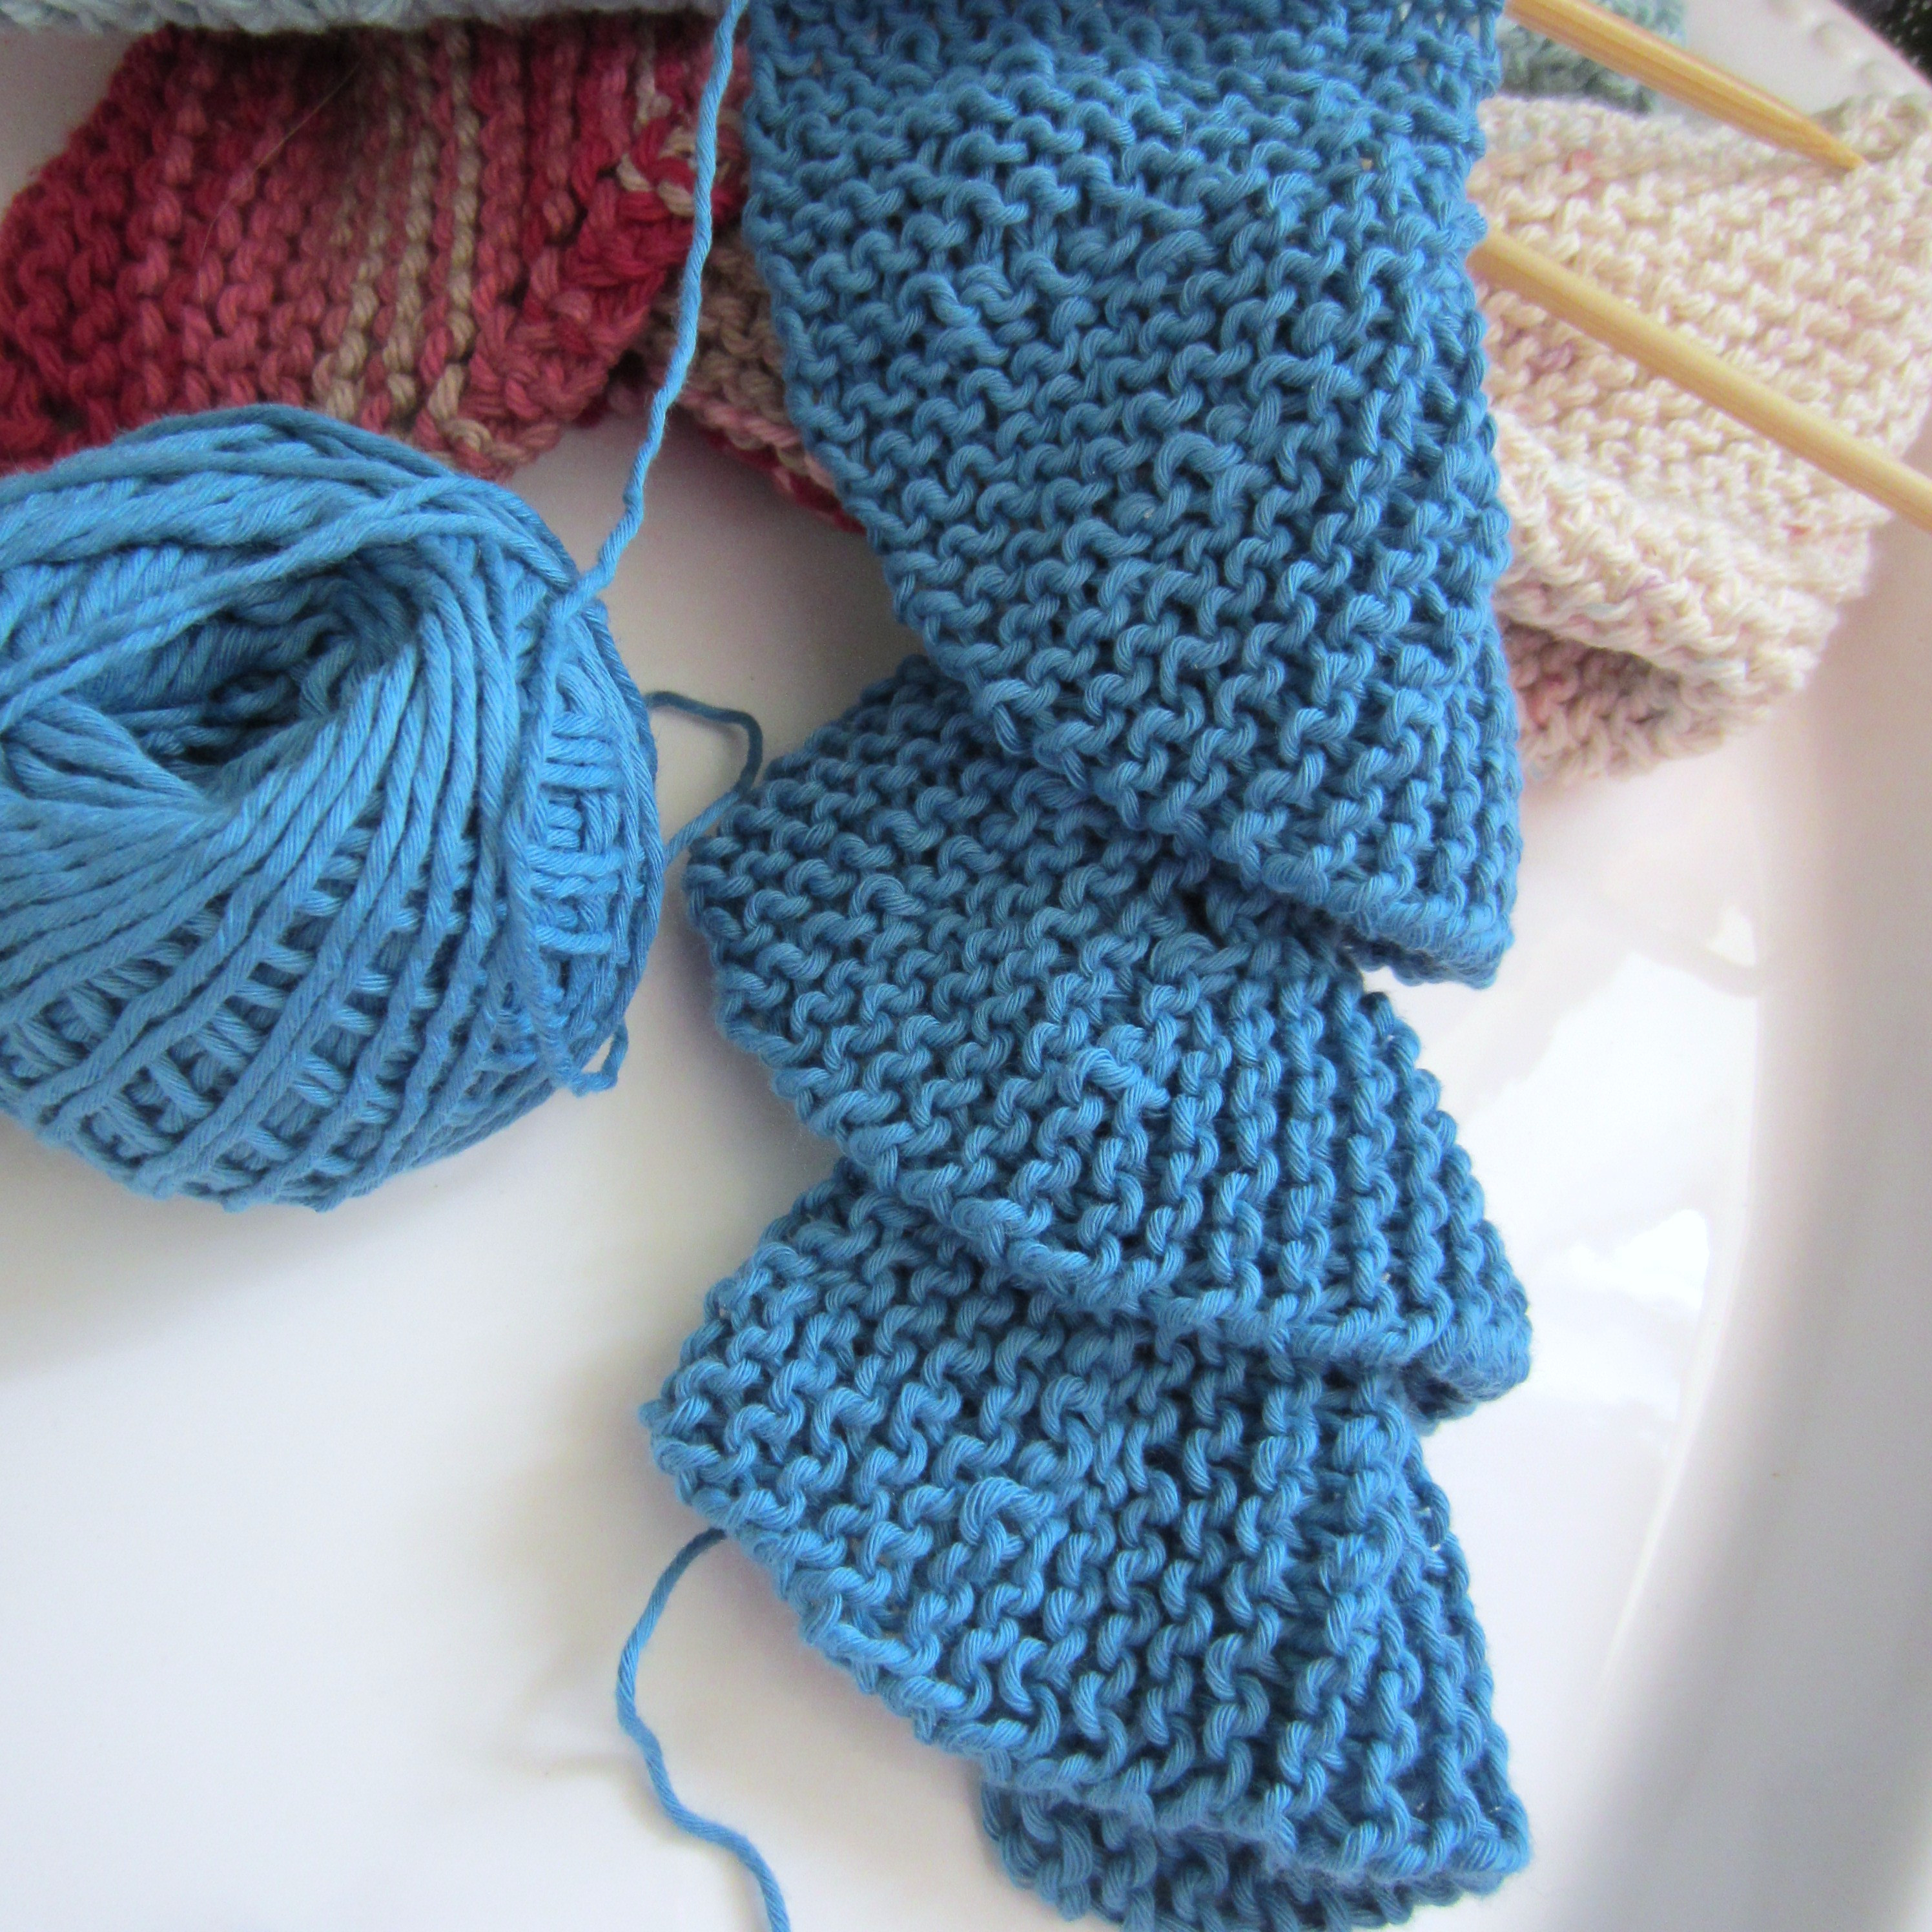 Trying My Hand At Short Row Knitting Spiral Scarf